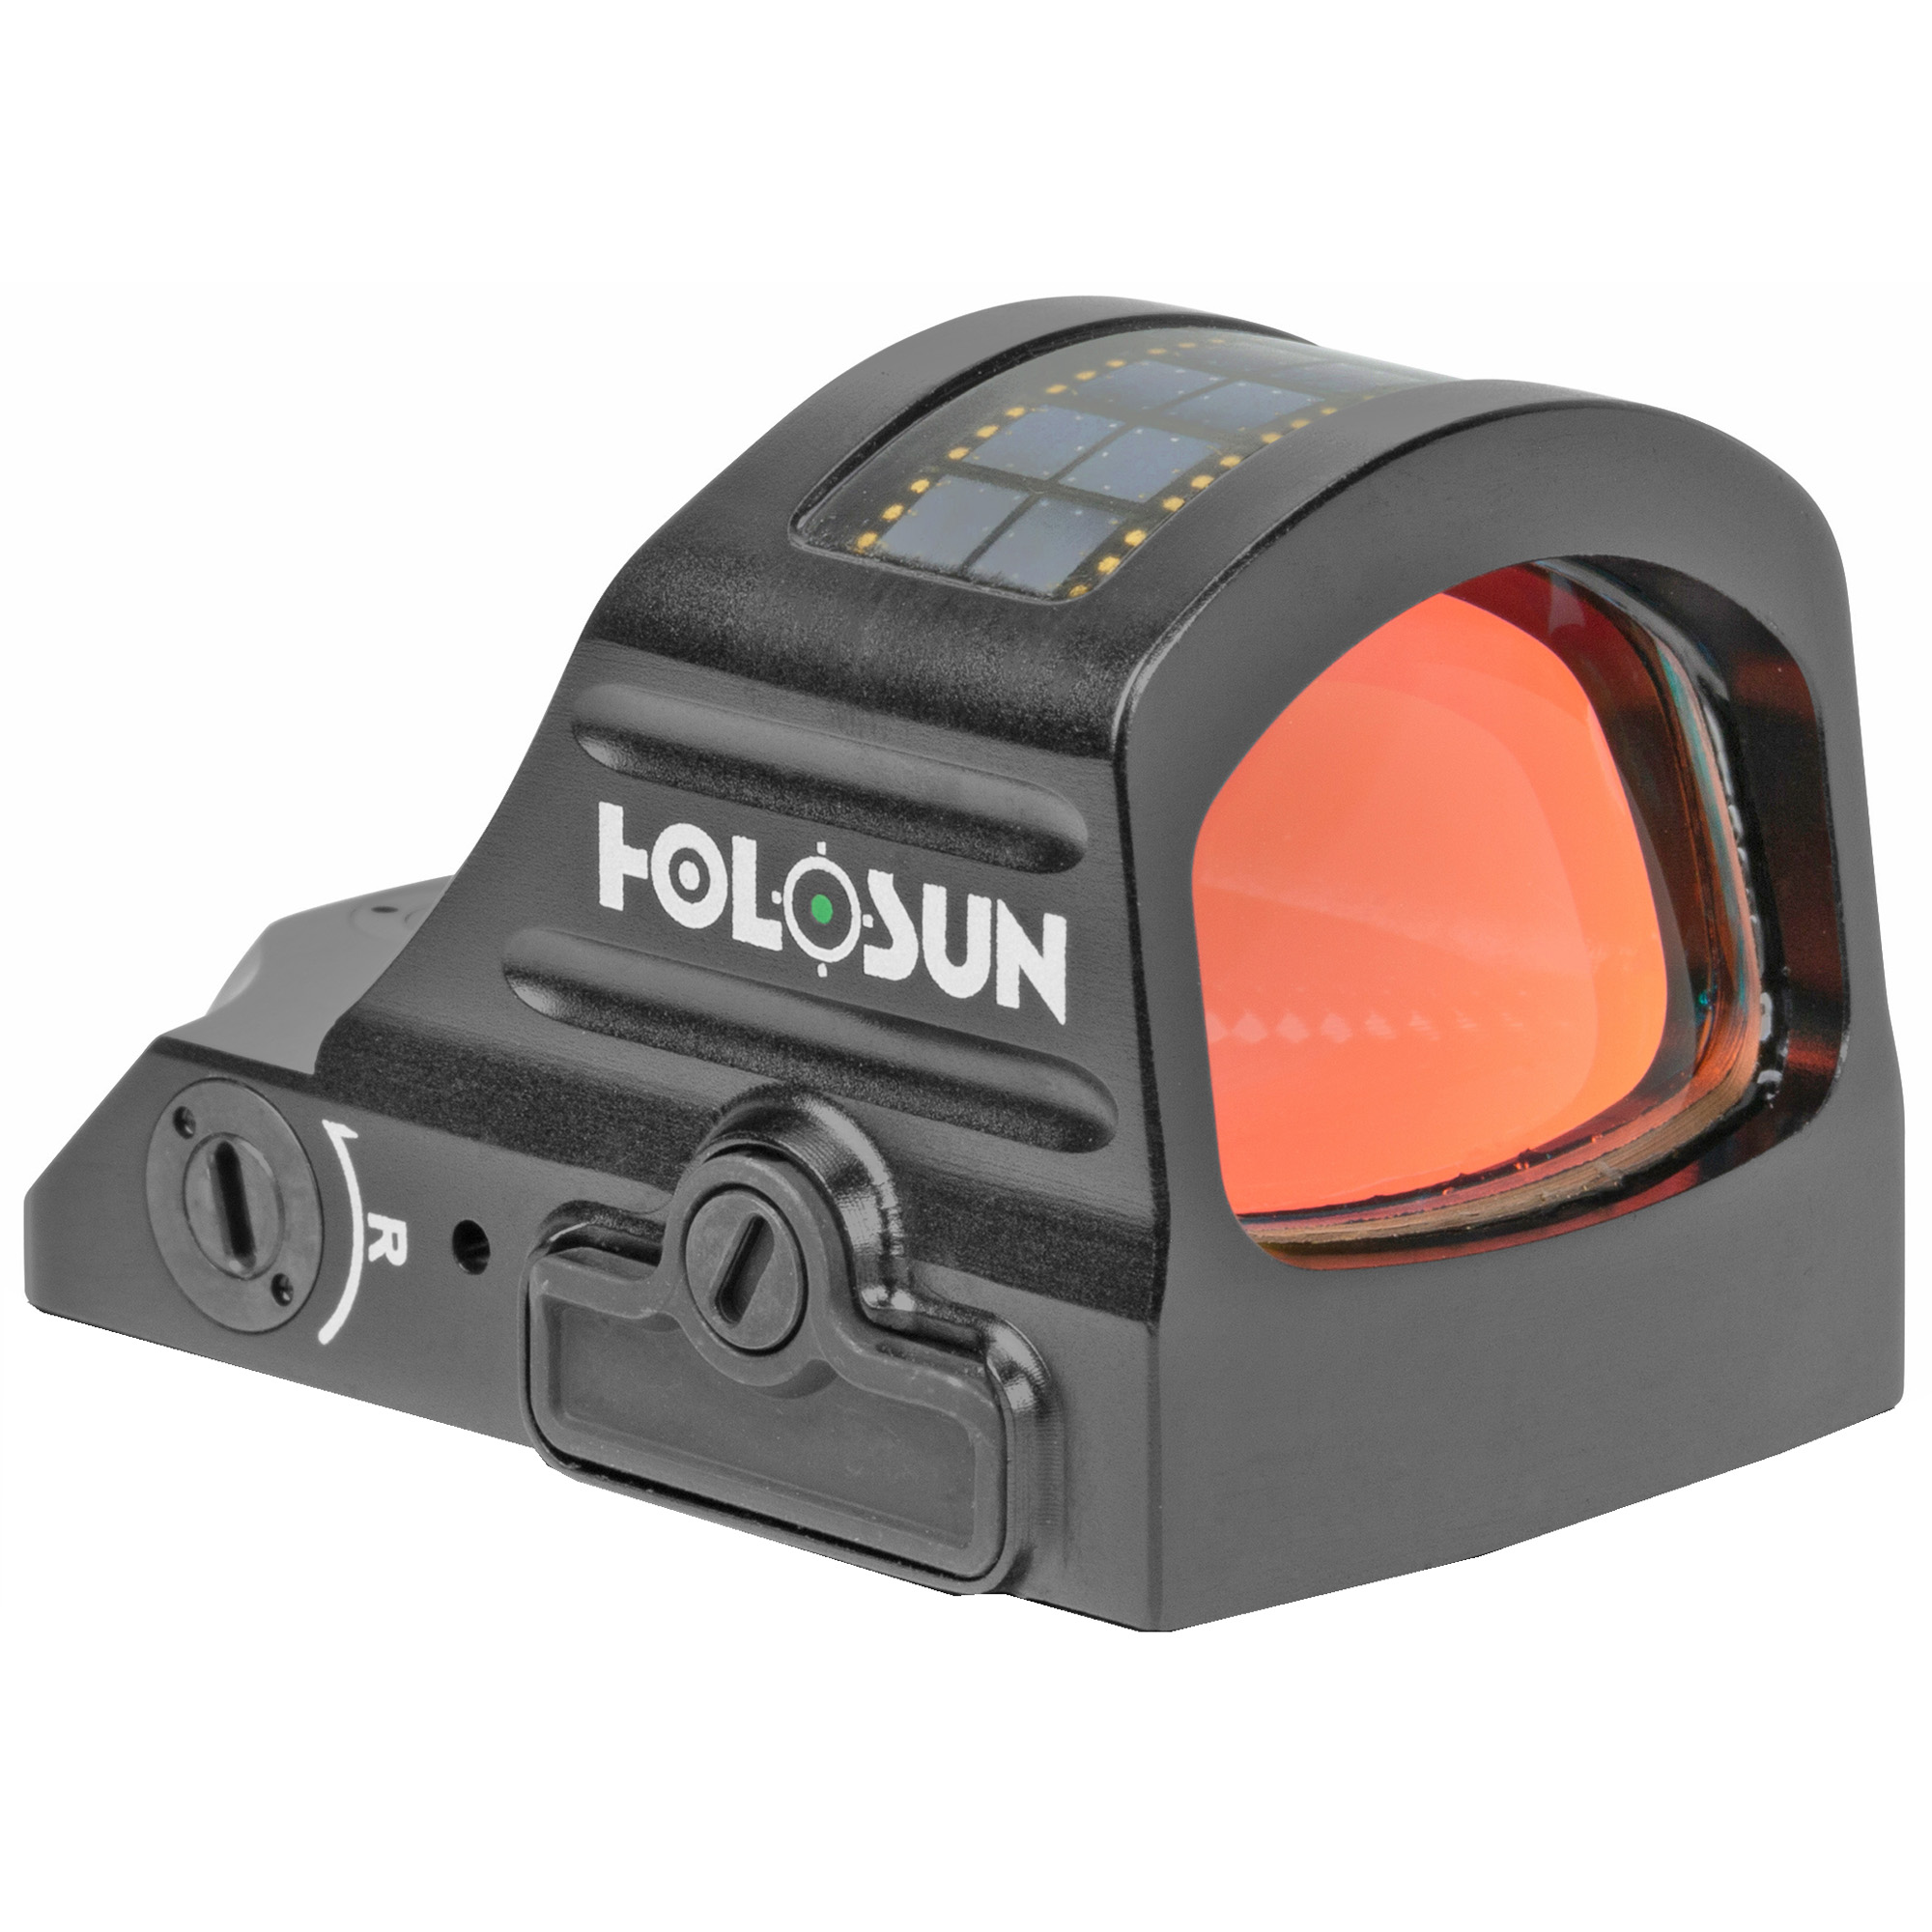 Holosun Technologies, 507C-GR-X2, Green Dot, 32 MOA Ring & 2 MOA Dot, Black Color, Side Battery, Solar Failsafe, Mount Not Included